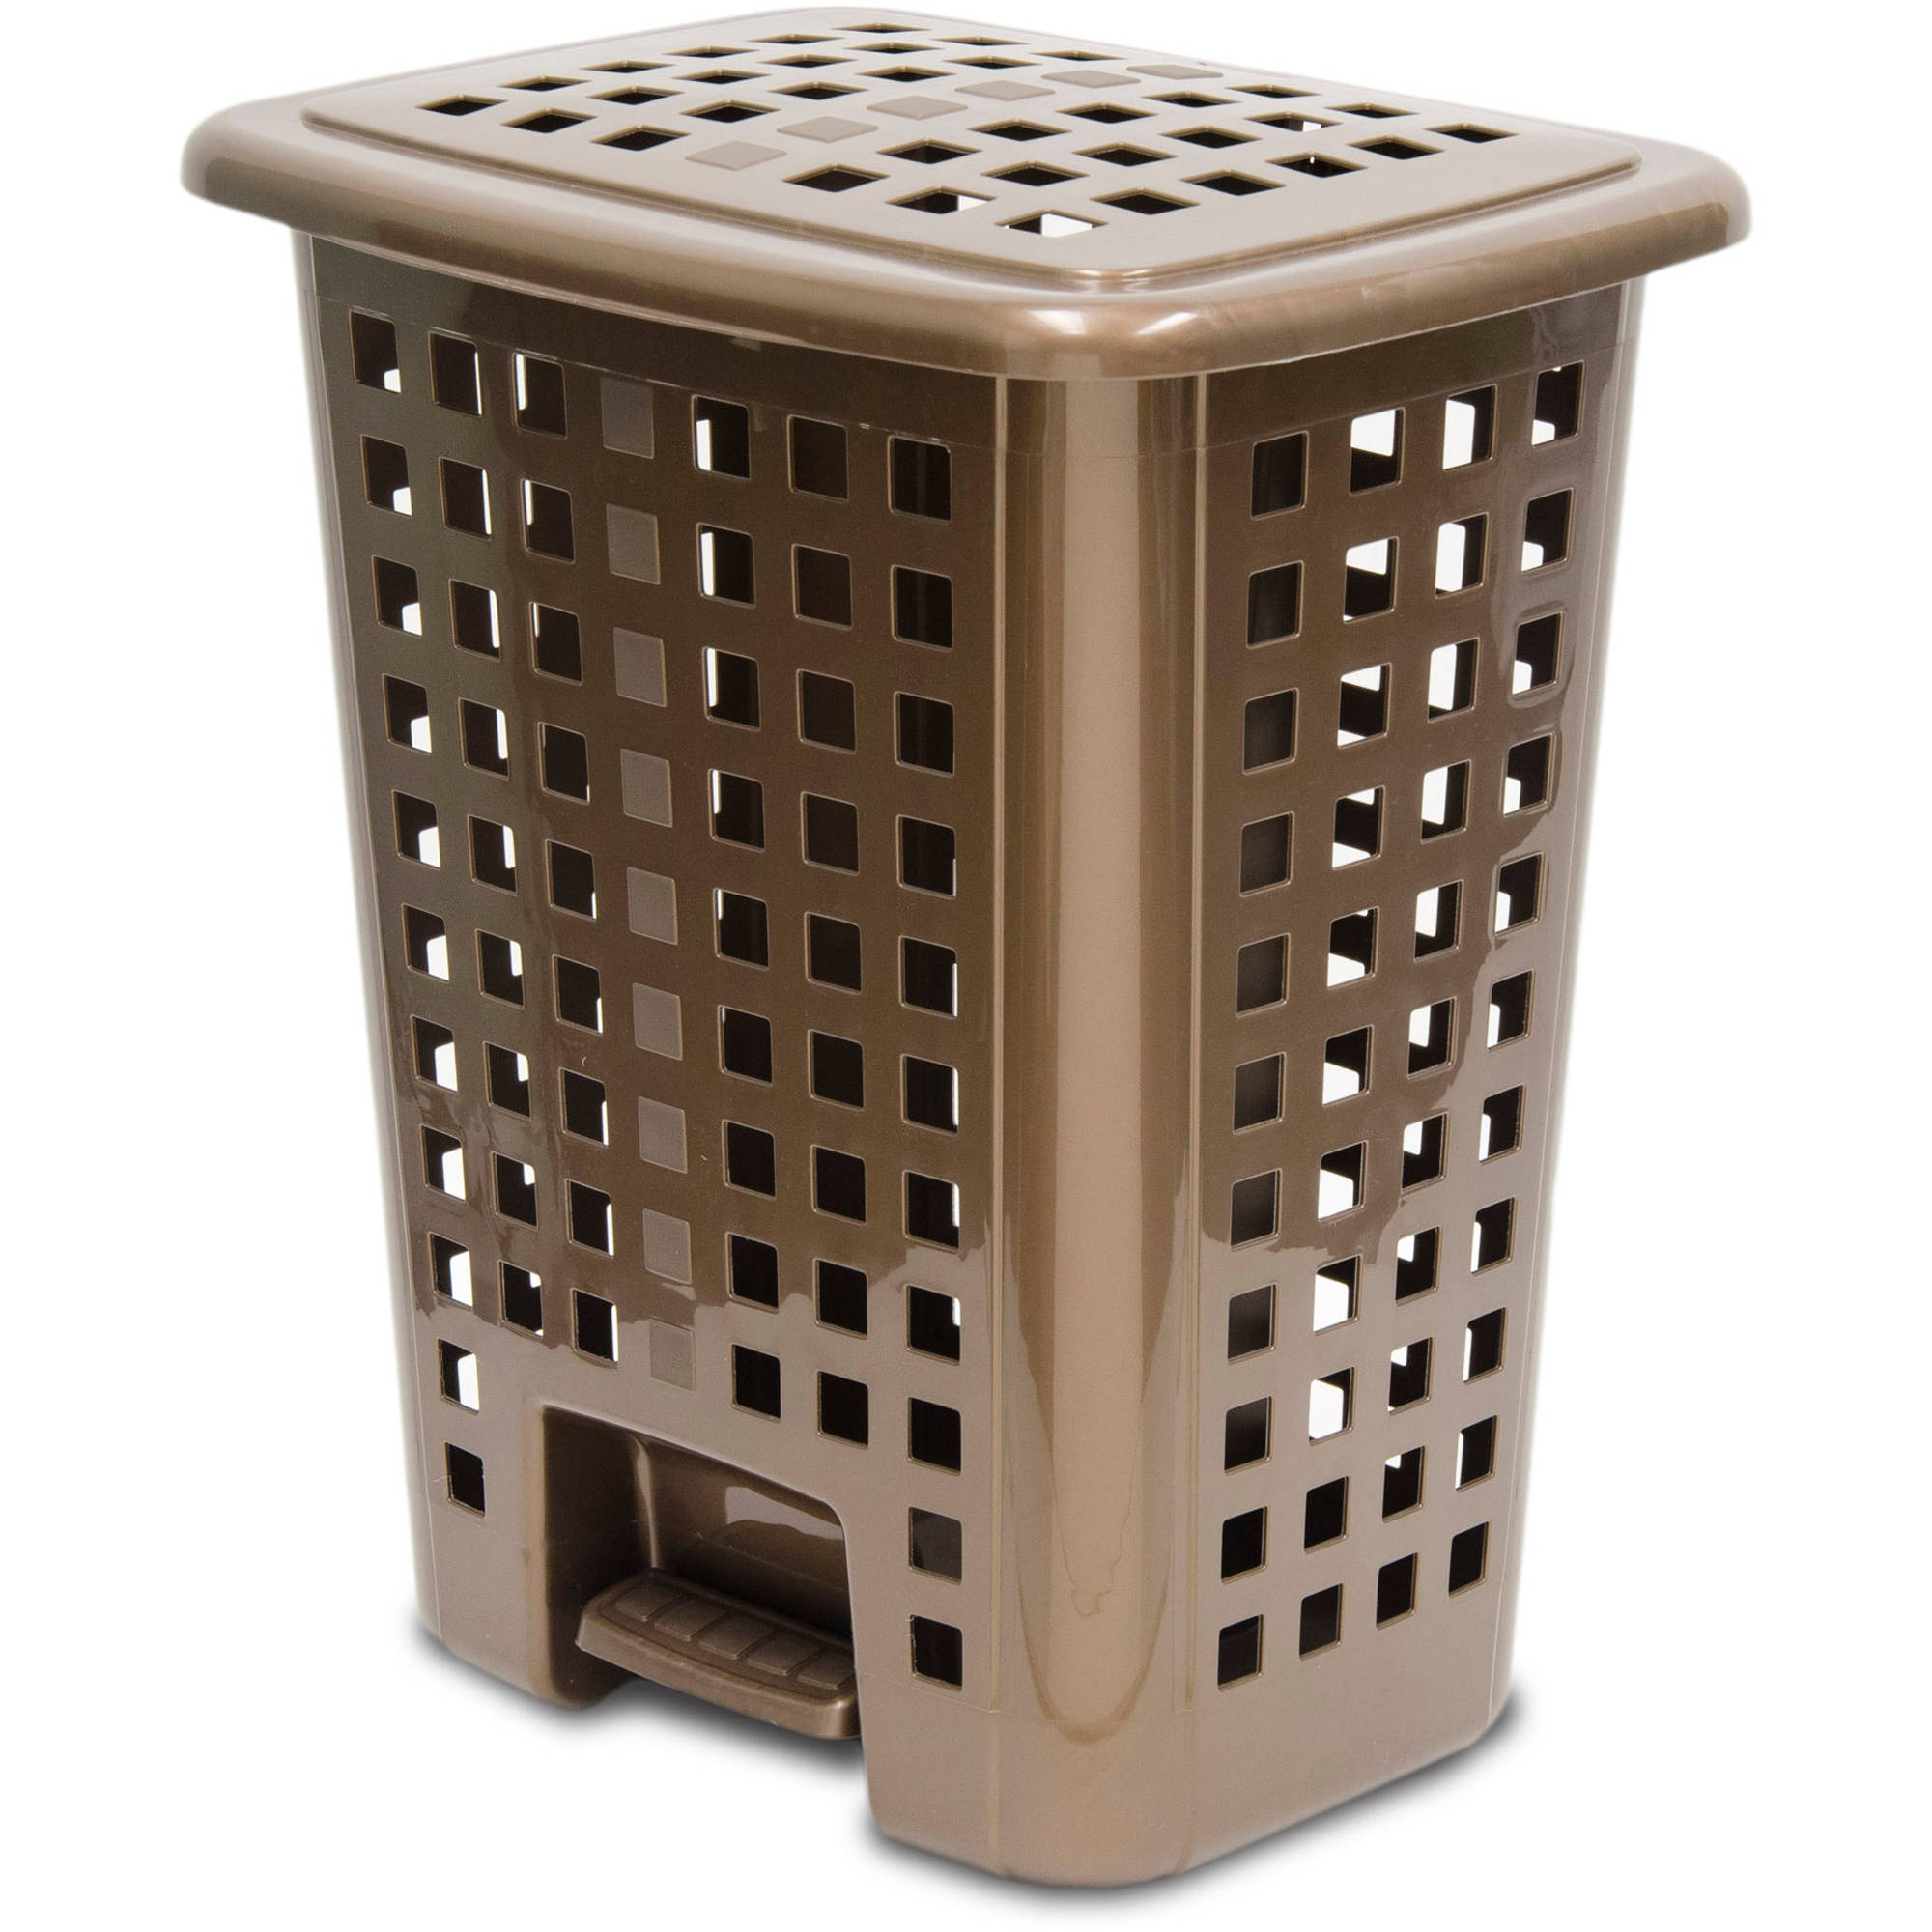 Home Logic Step-On Lidded Hamper, Bronze